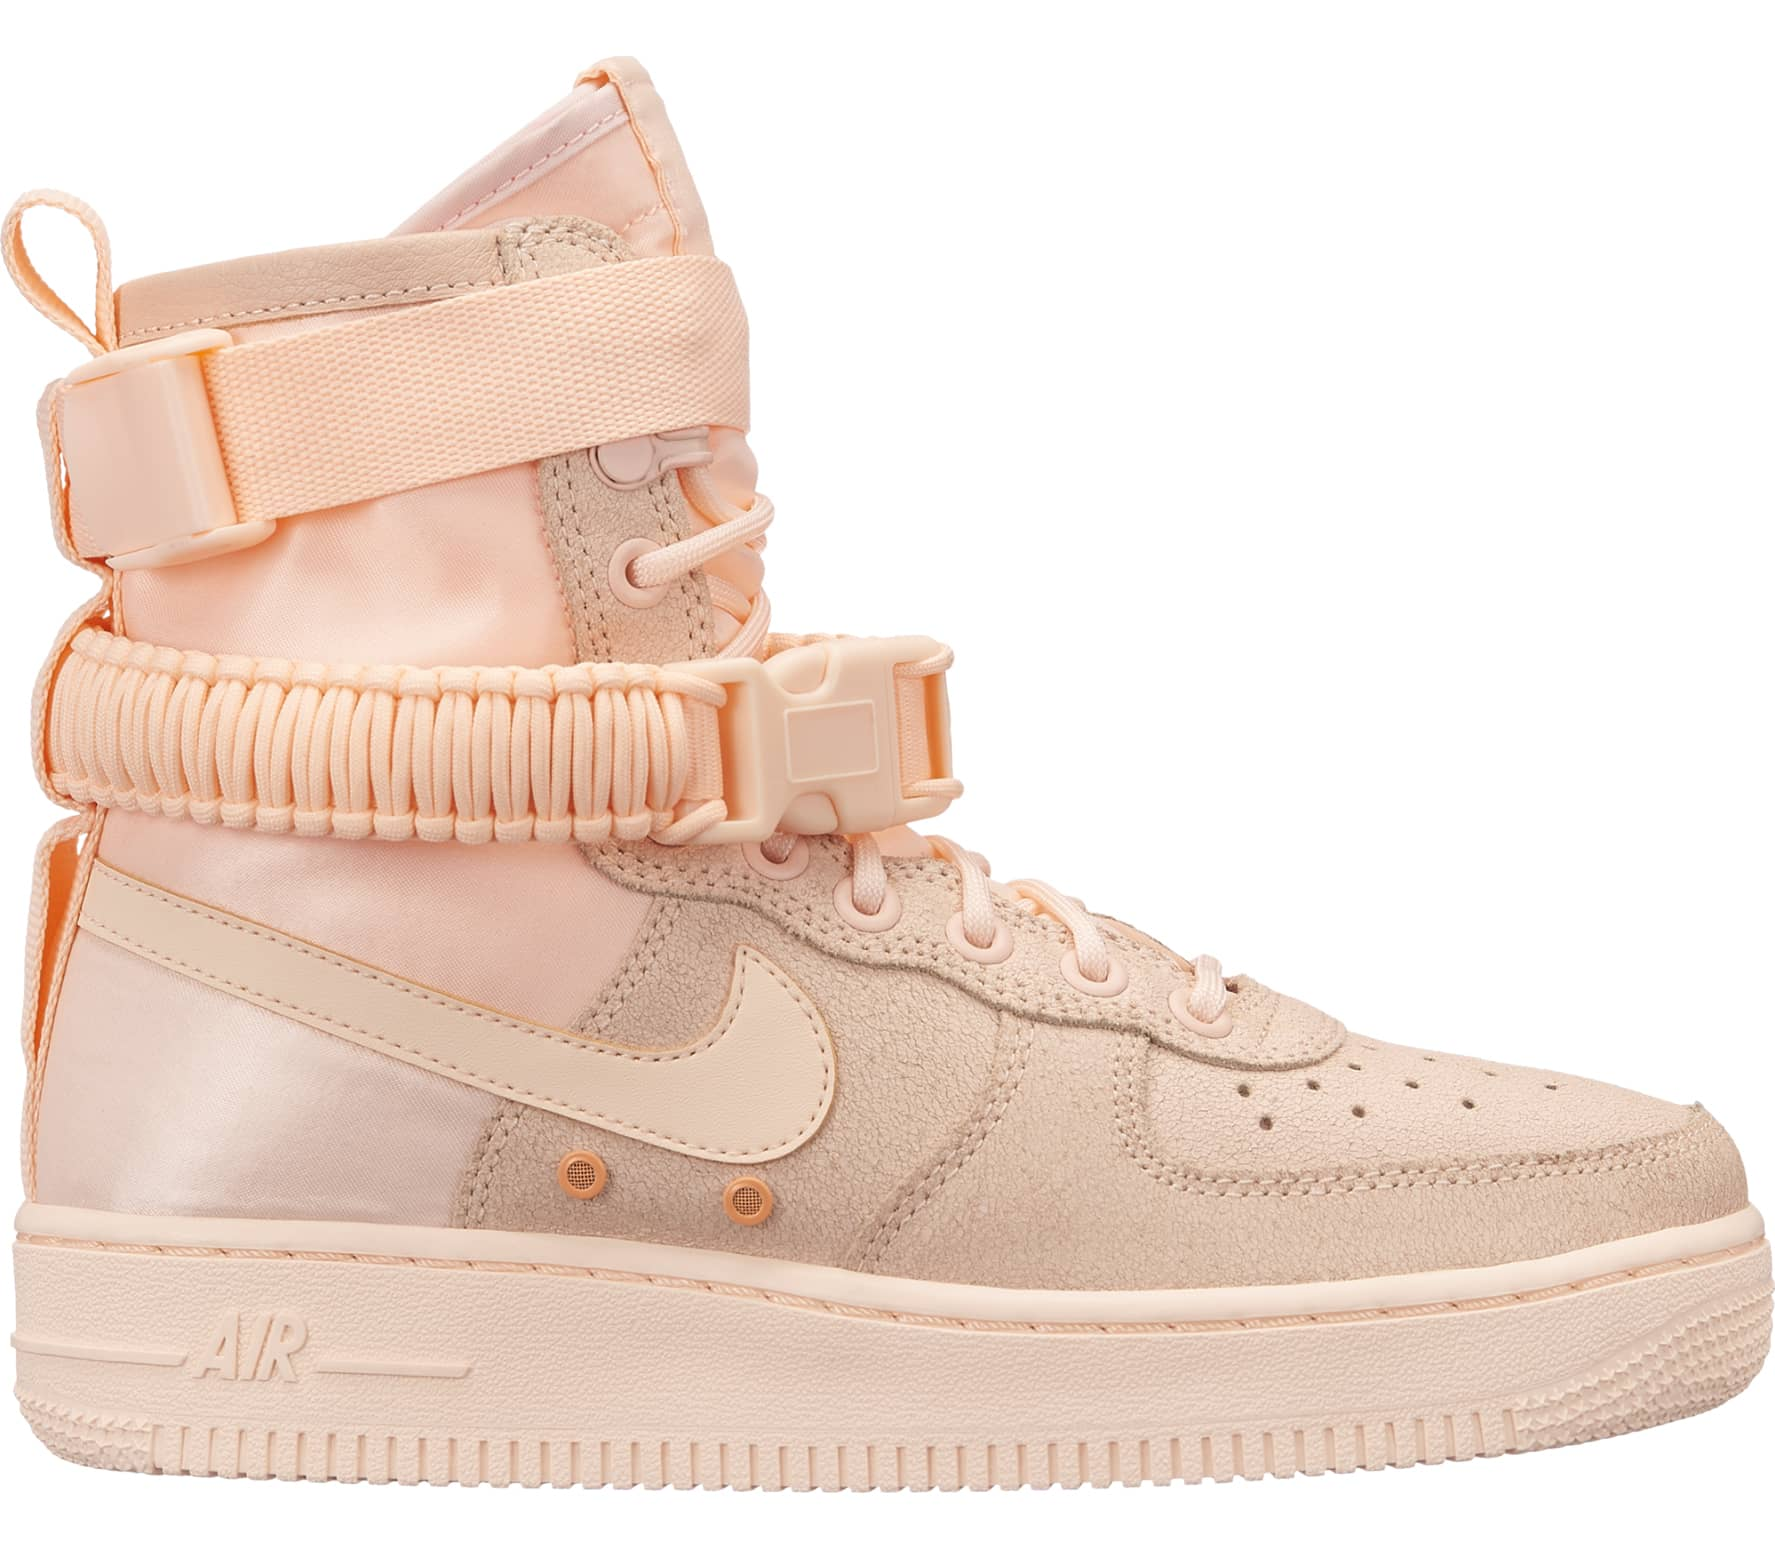 spain nike air force 1 damänner rosa 0a94a b3311